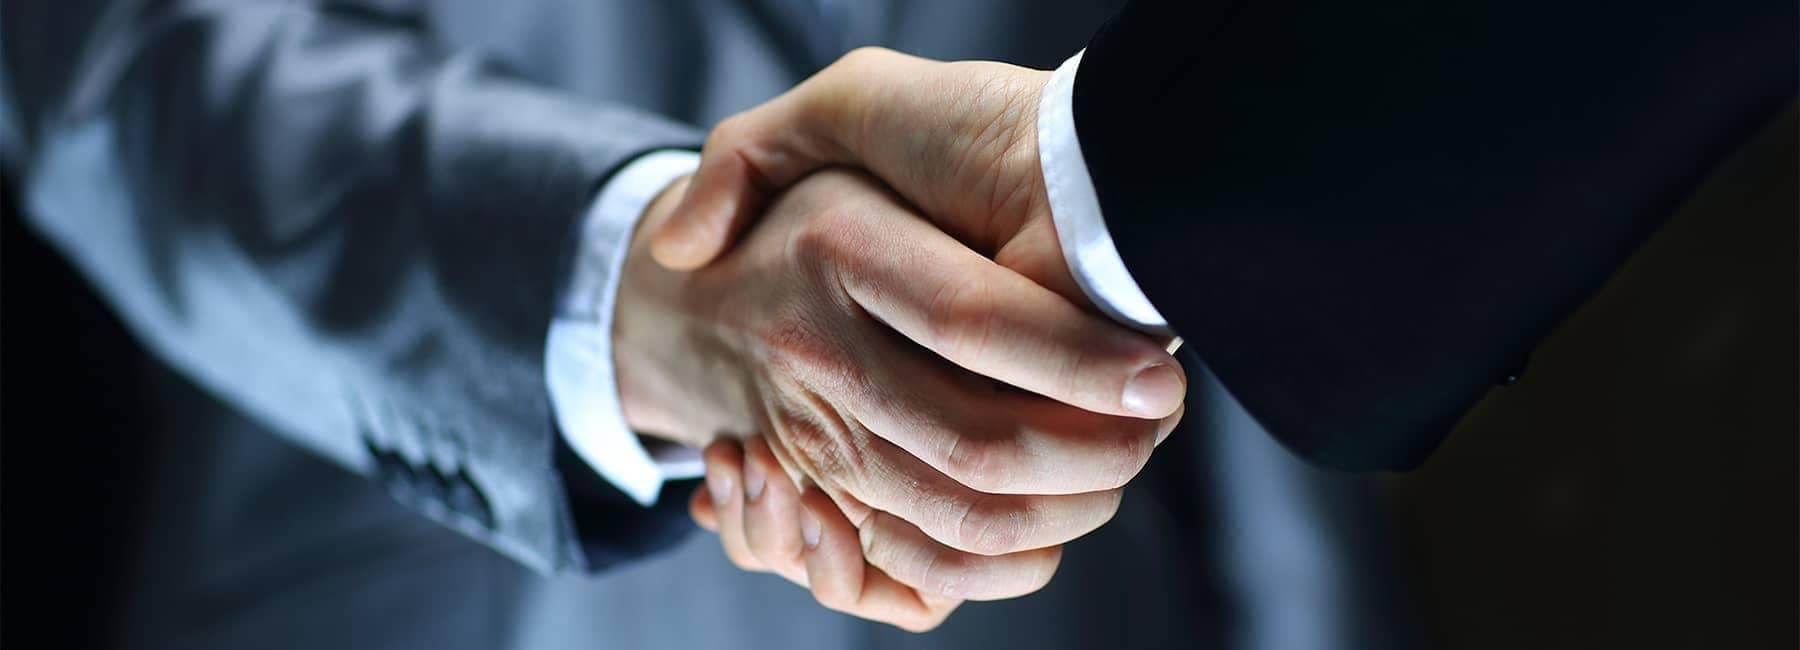 Businessmen-in-Suits-Shaking-Hands